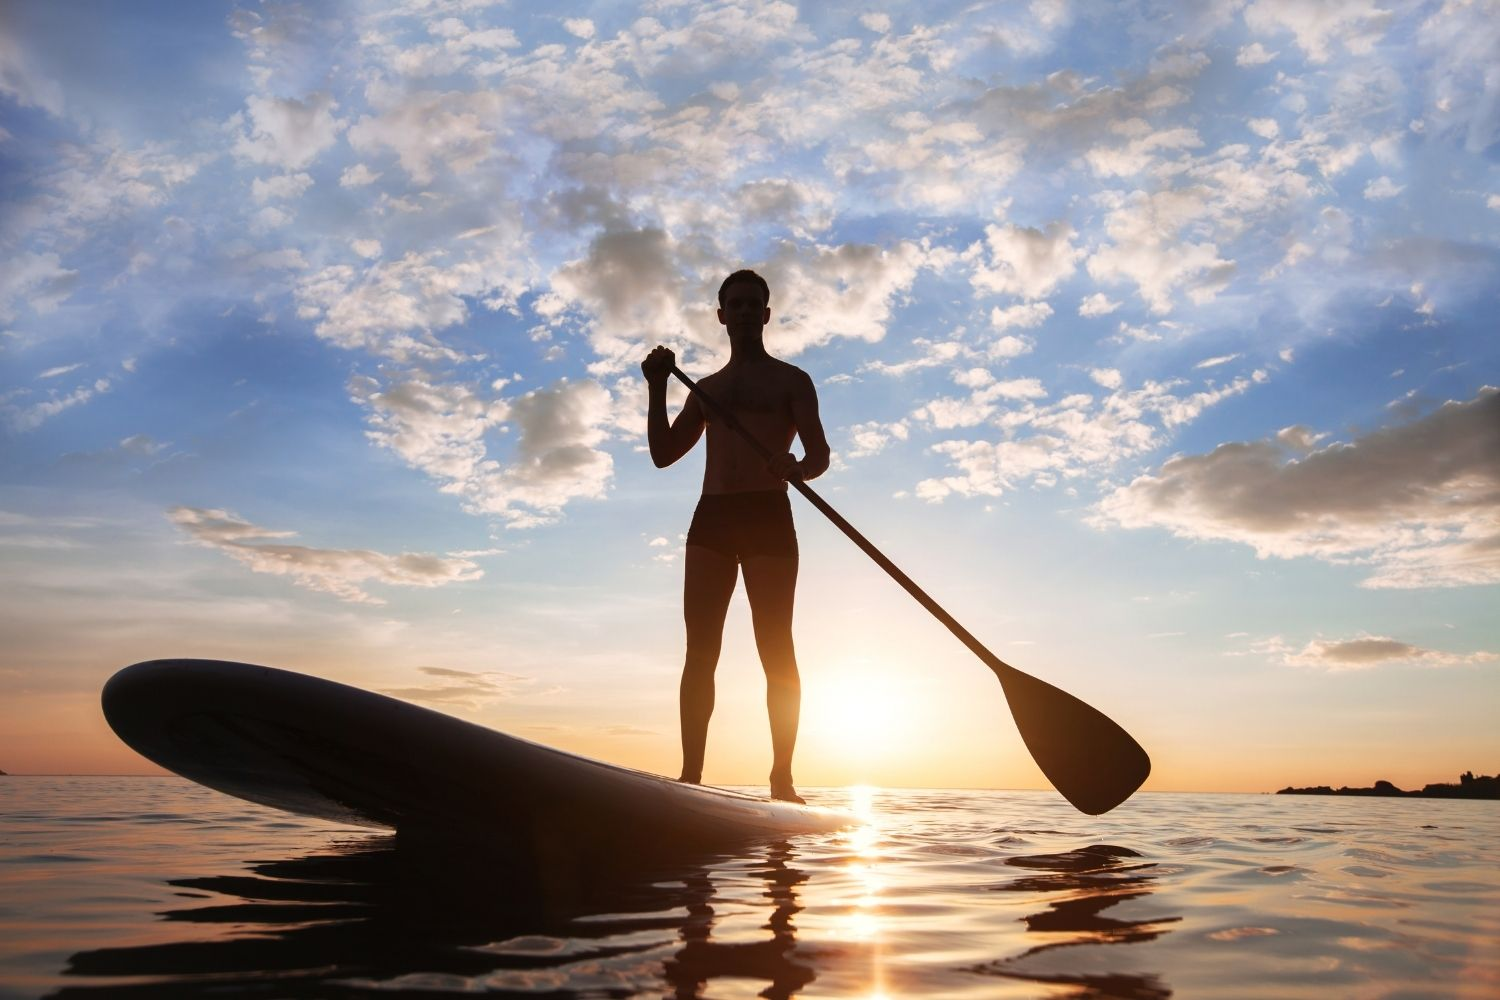 10 Health and Fitness Benefits of Standup Paddleboarding